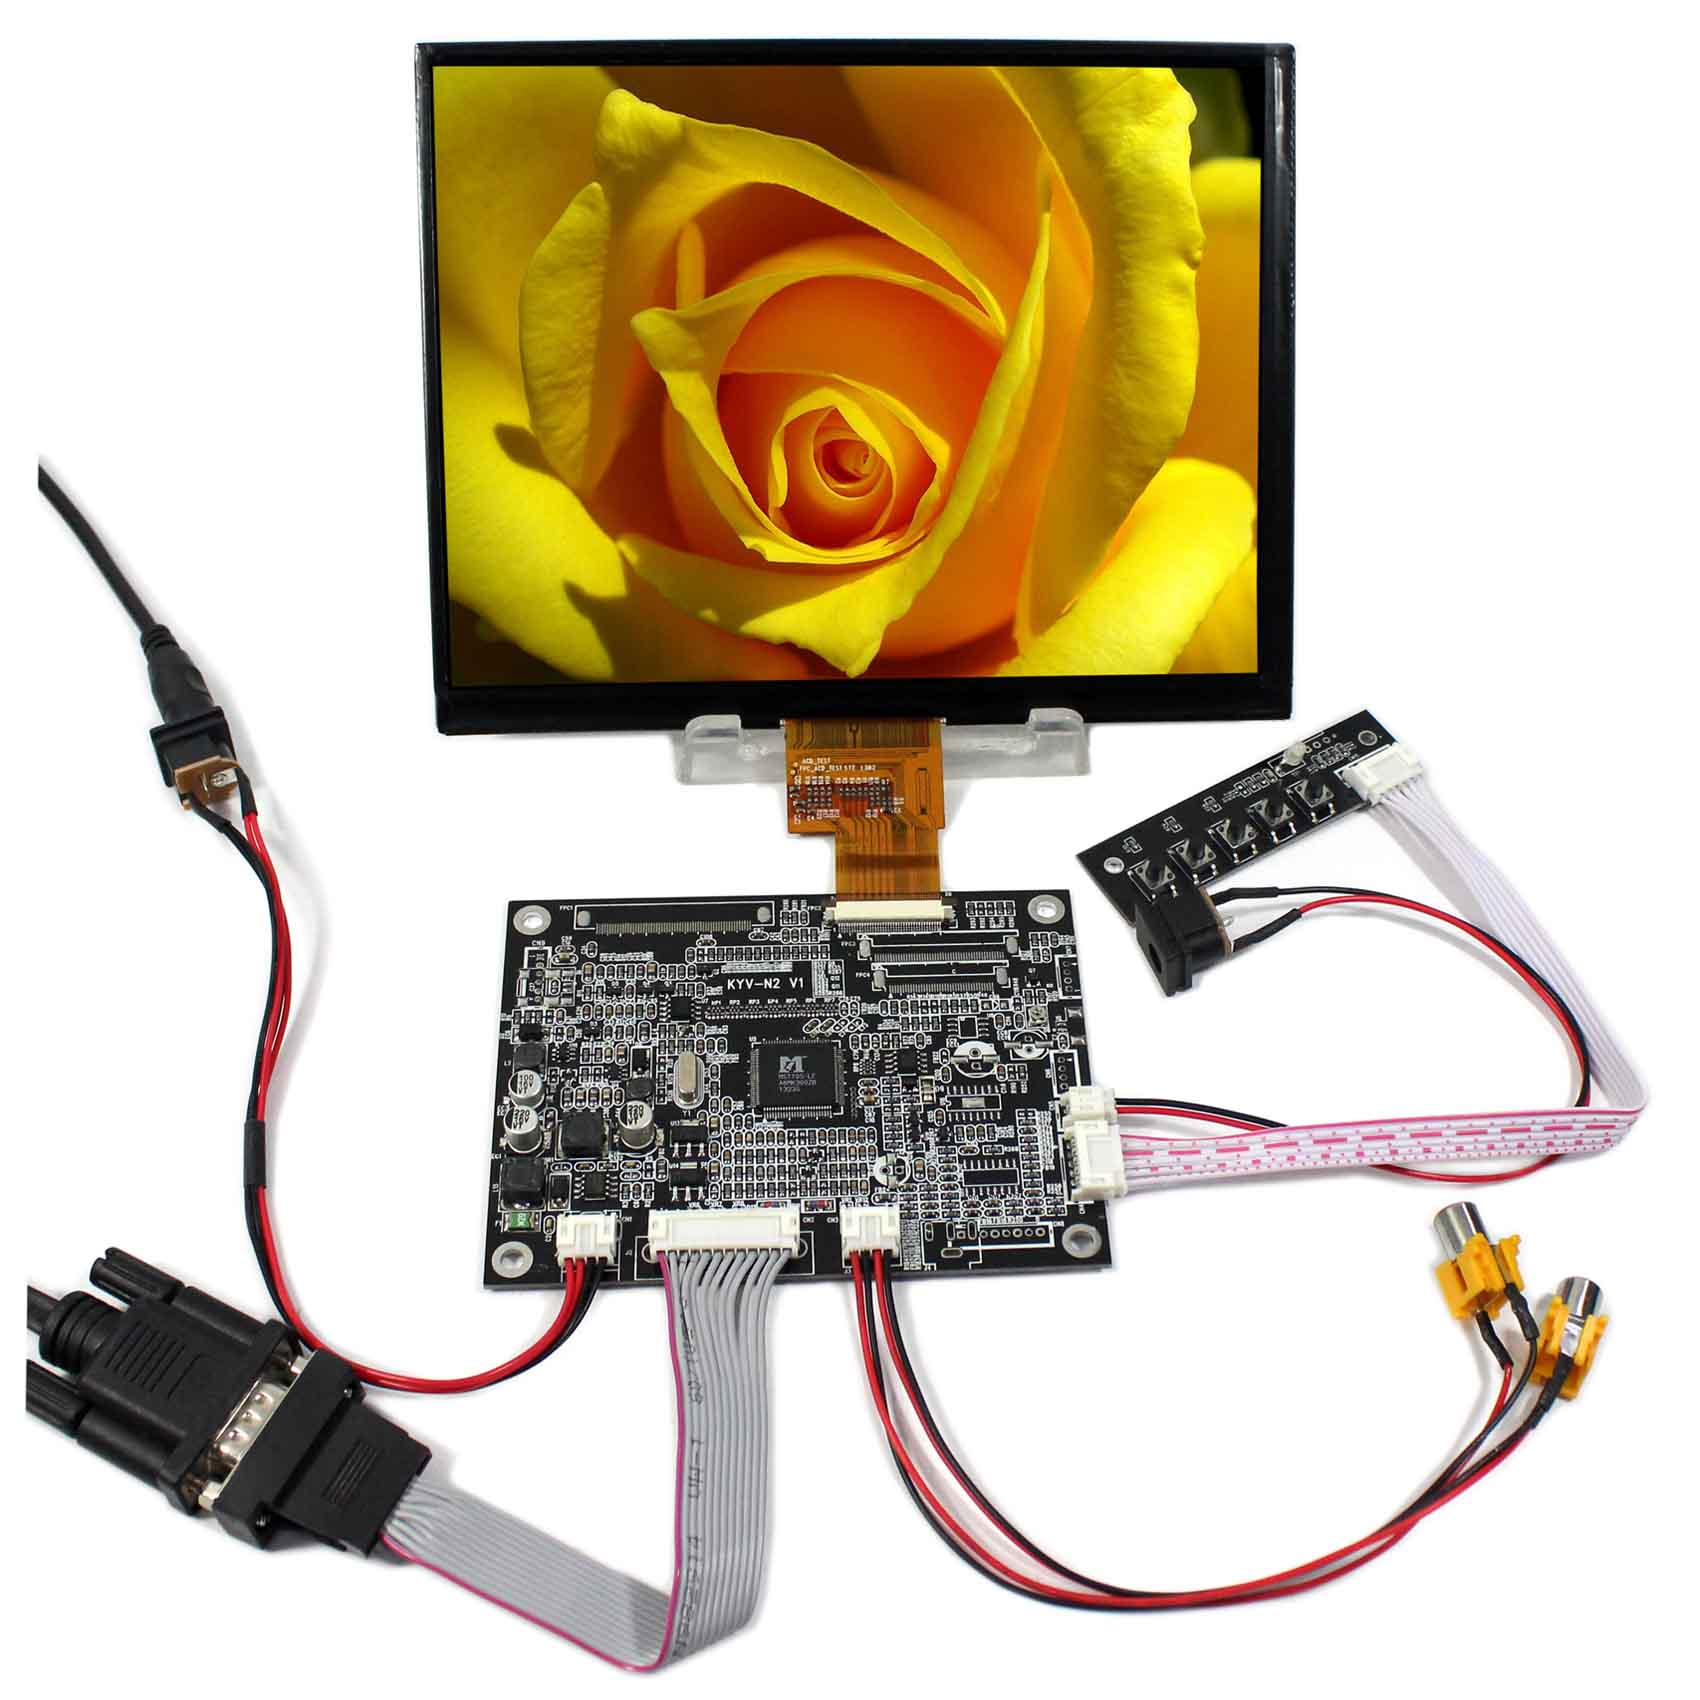 VGA 2AV Reversing LCD Controller Board+8inch HJ080IA-01E 1024x768 IPS LCD Screen hdmi vga av audio usb control board 8inch hj080ia 01e 1024 768 ips lcd panel screen model lcd for raspberry pi